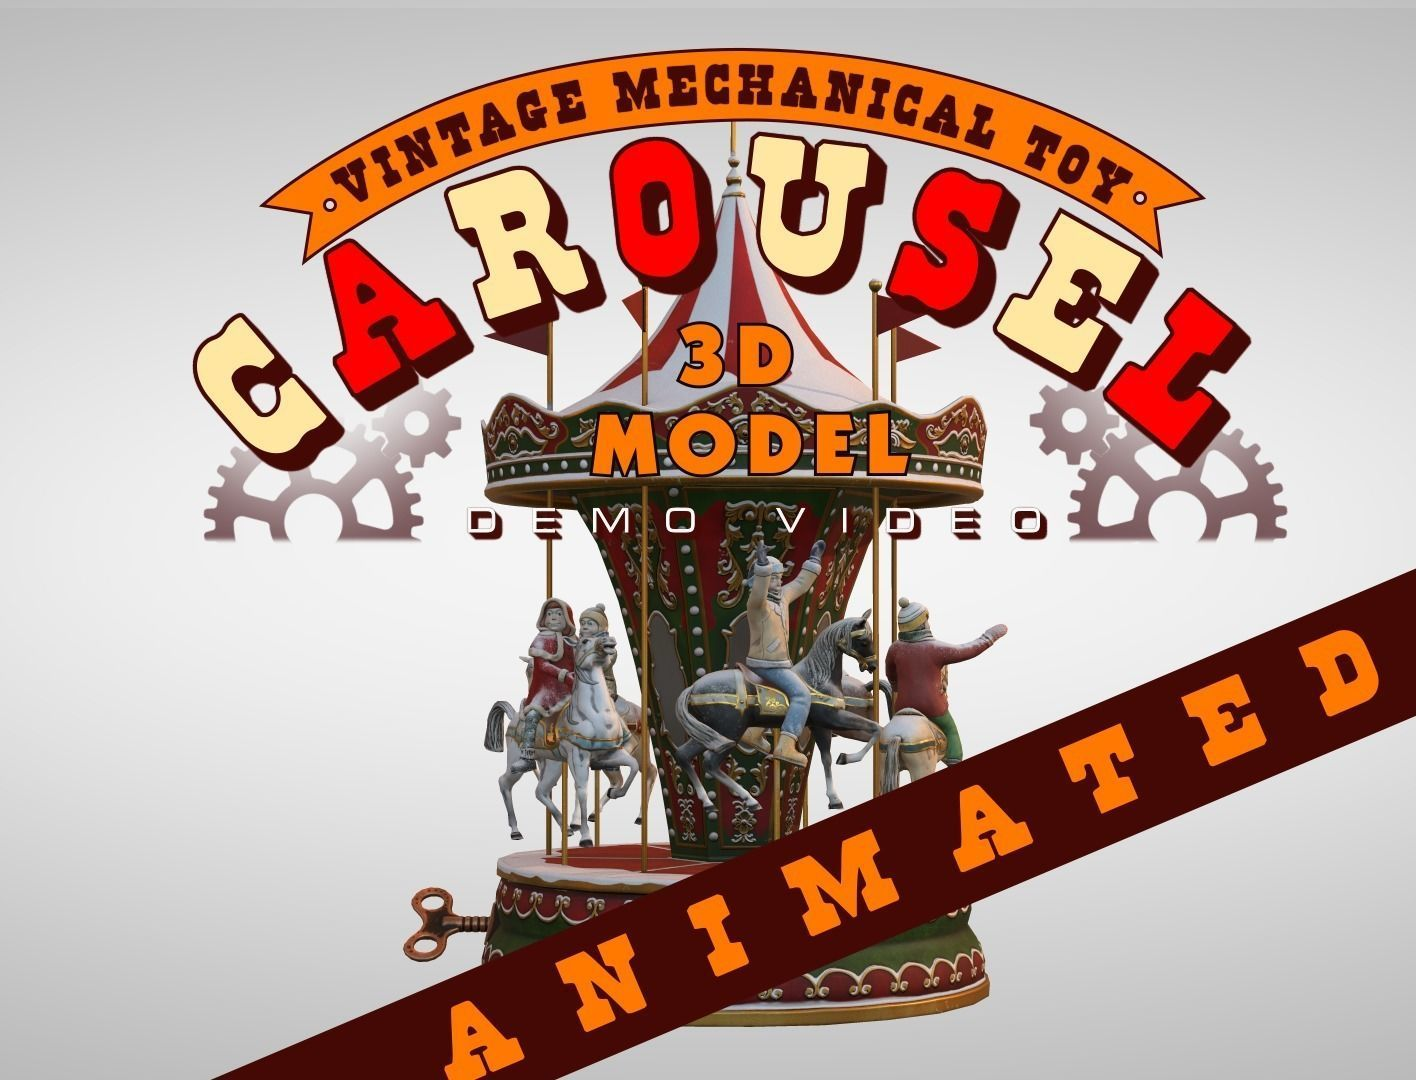 Carousel Vintage Mechanical Toy